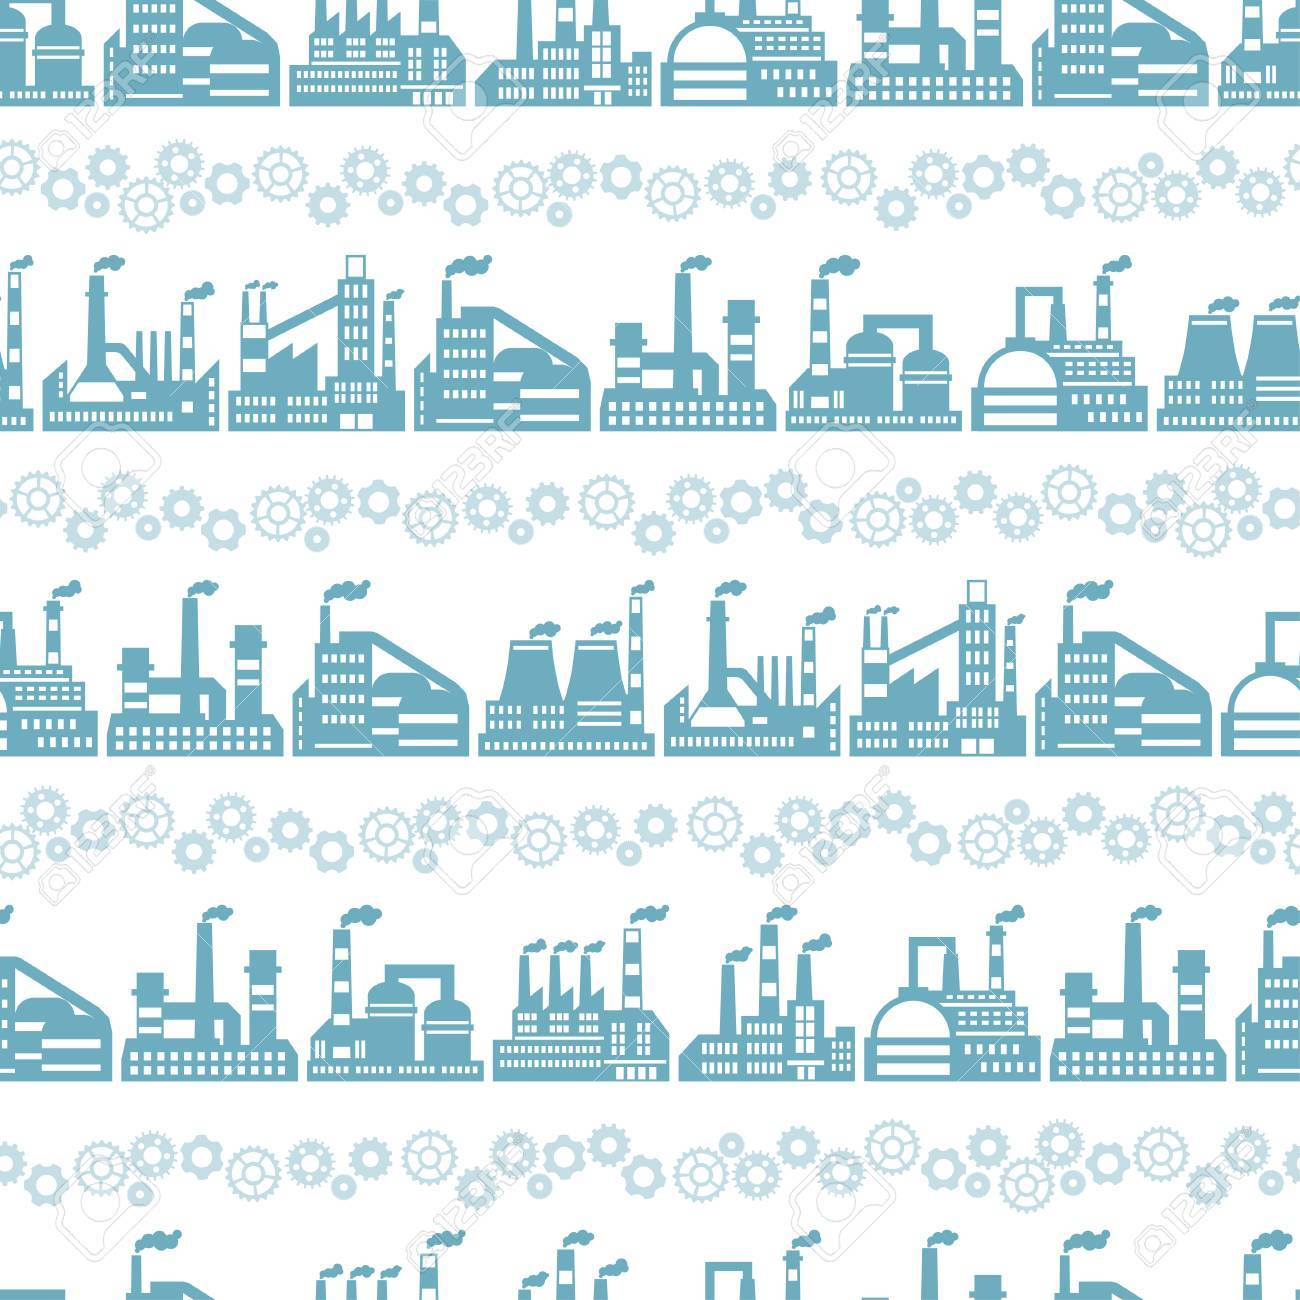 Industrial factory buildings seamless pattern. Stock Vector - 22726671